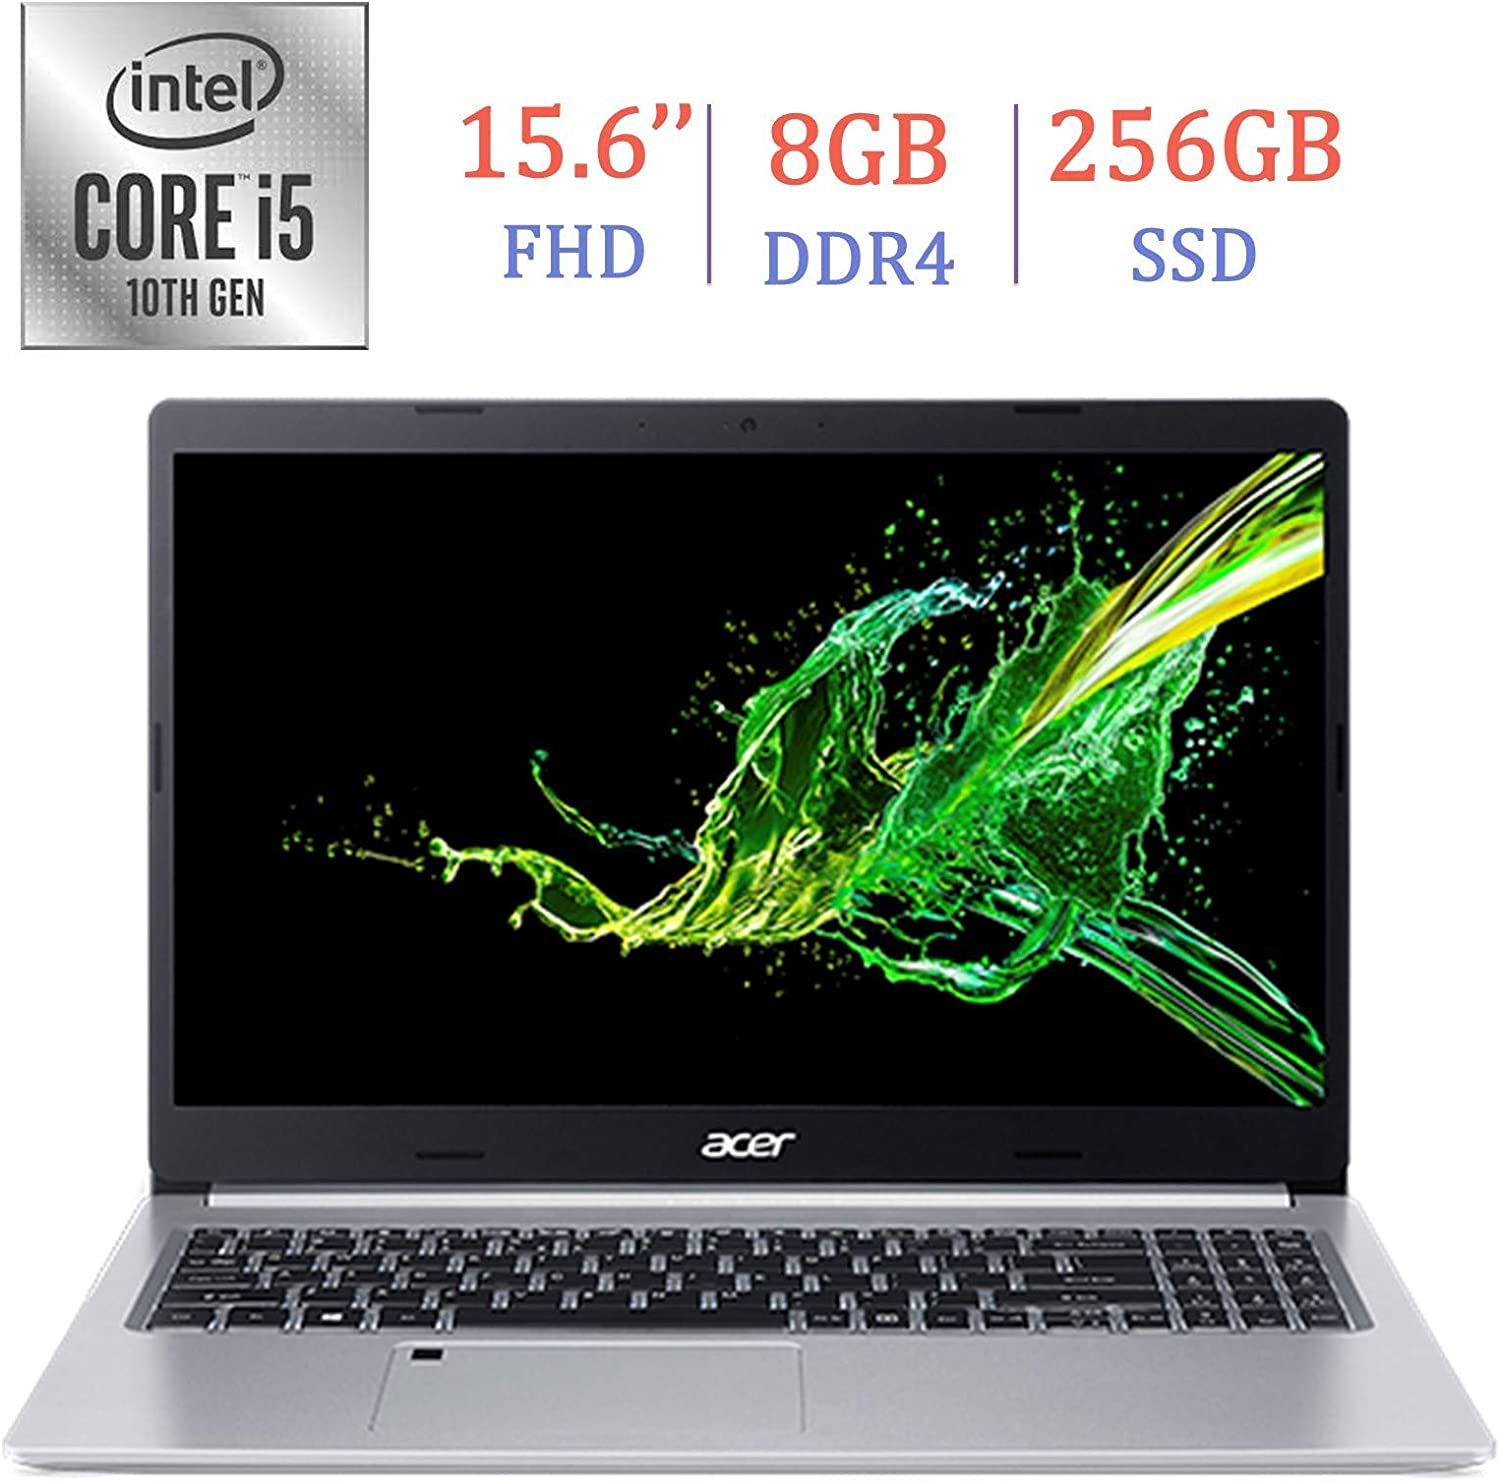 Acer Premium Aspire 5 A515 15.6-inch FHD (1920x1080) Laptop PC, 10th Gen Quad-Core Intel i5-10210U up to 4.2GHz, 8GB DDR4, 256GB SSD, Stereo Speakers, Intel UHD Graphics 620, Windows 10 Home (Renewed)